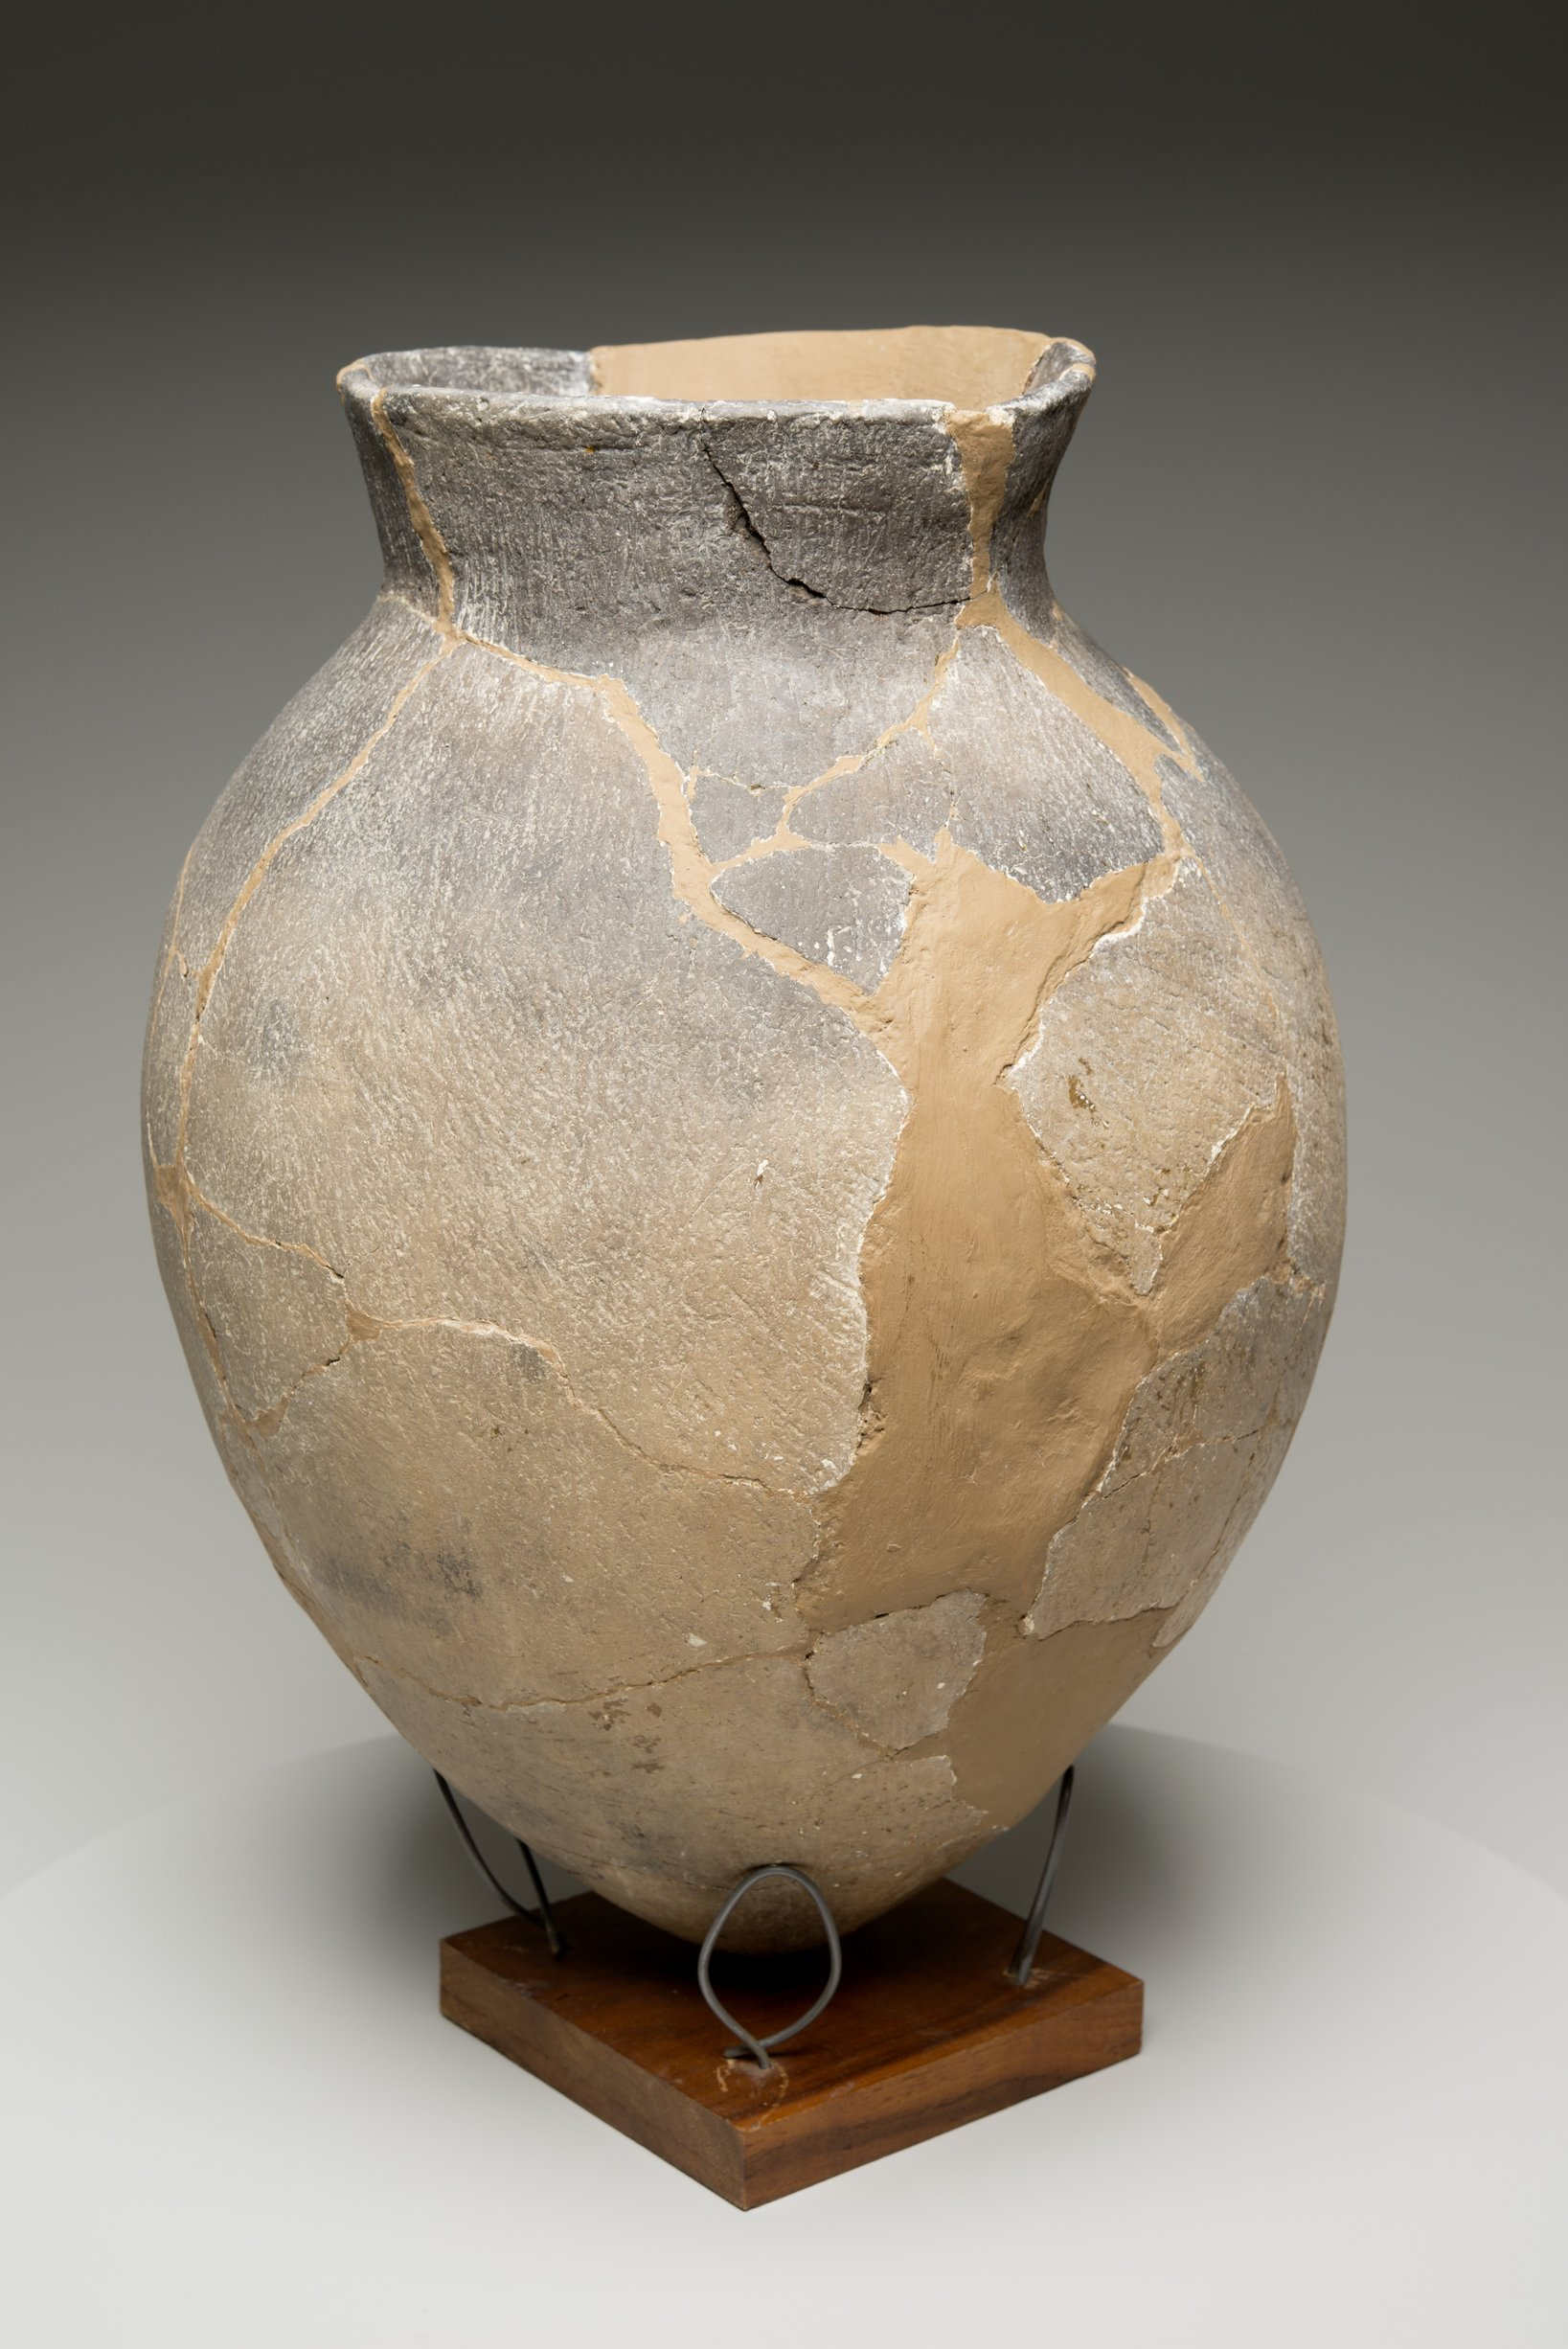 Grasshopper Falls phase Early Ceramic Vessel From the Booth Site, 14JN349 - 6